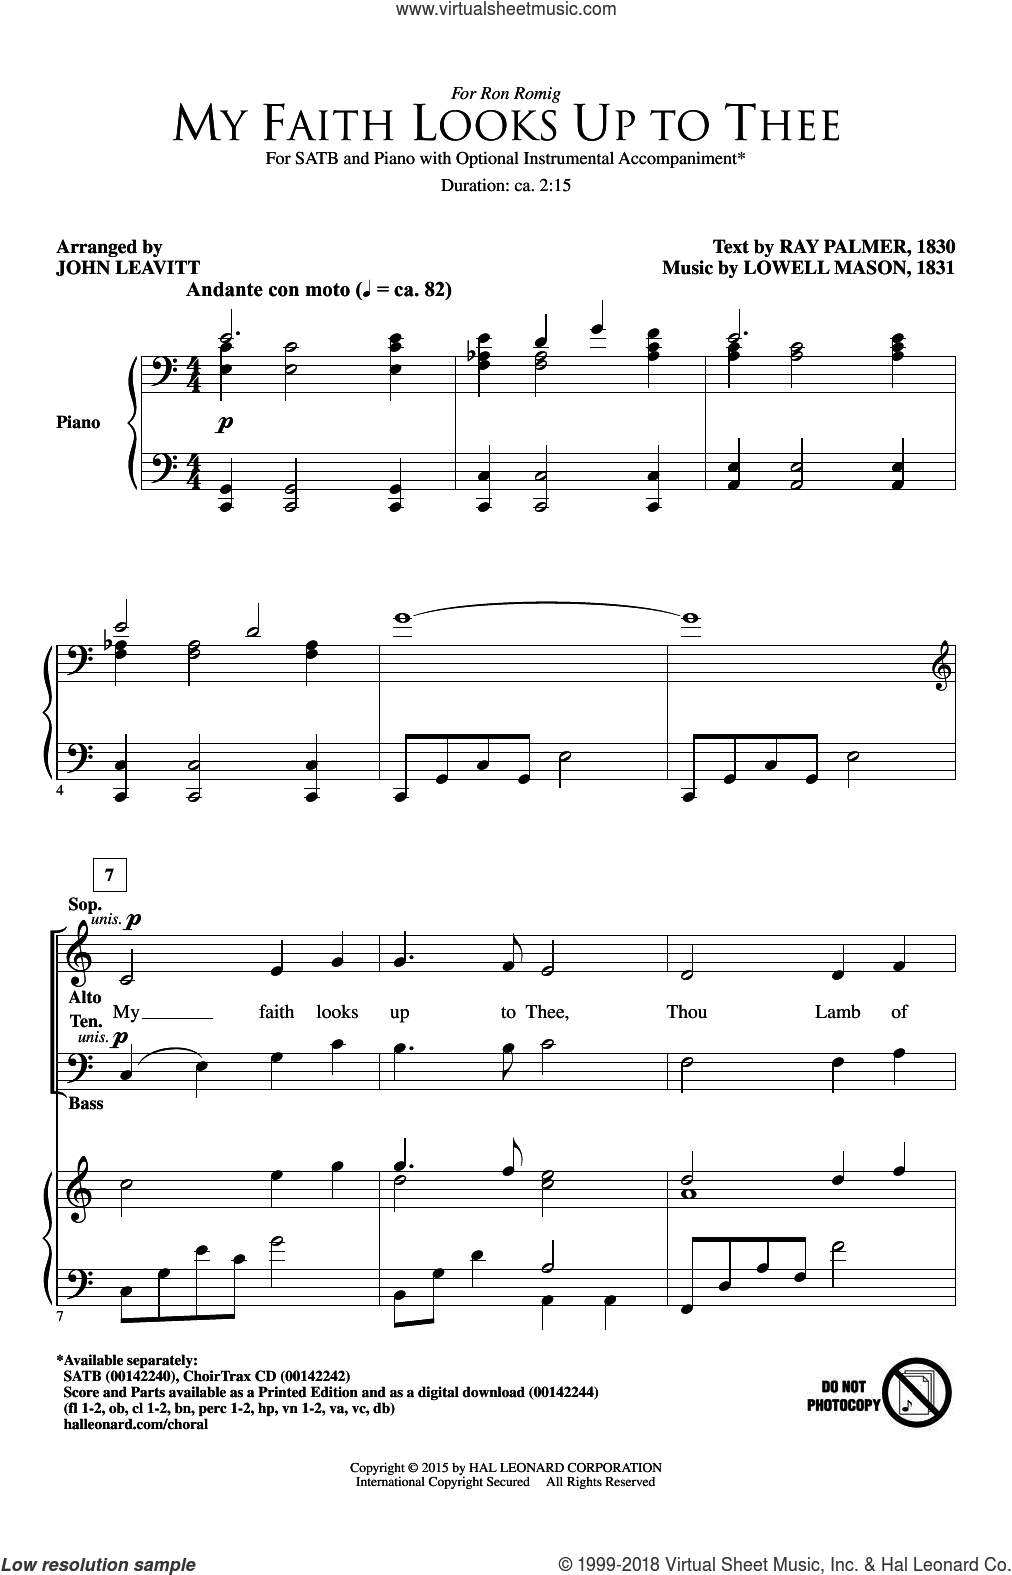 My Faith Looks Up To Thee sheet music for choir (SATB) by John Leavitt, Lowell Mason and Ray Palmer. Score Image Preview.